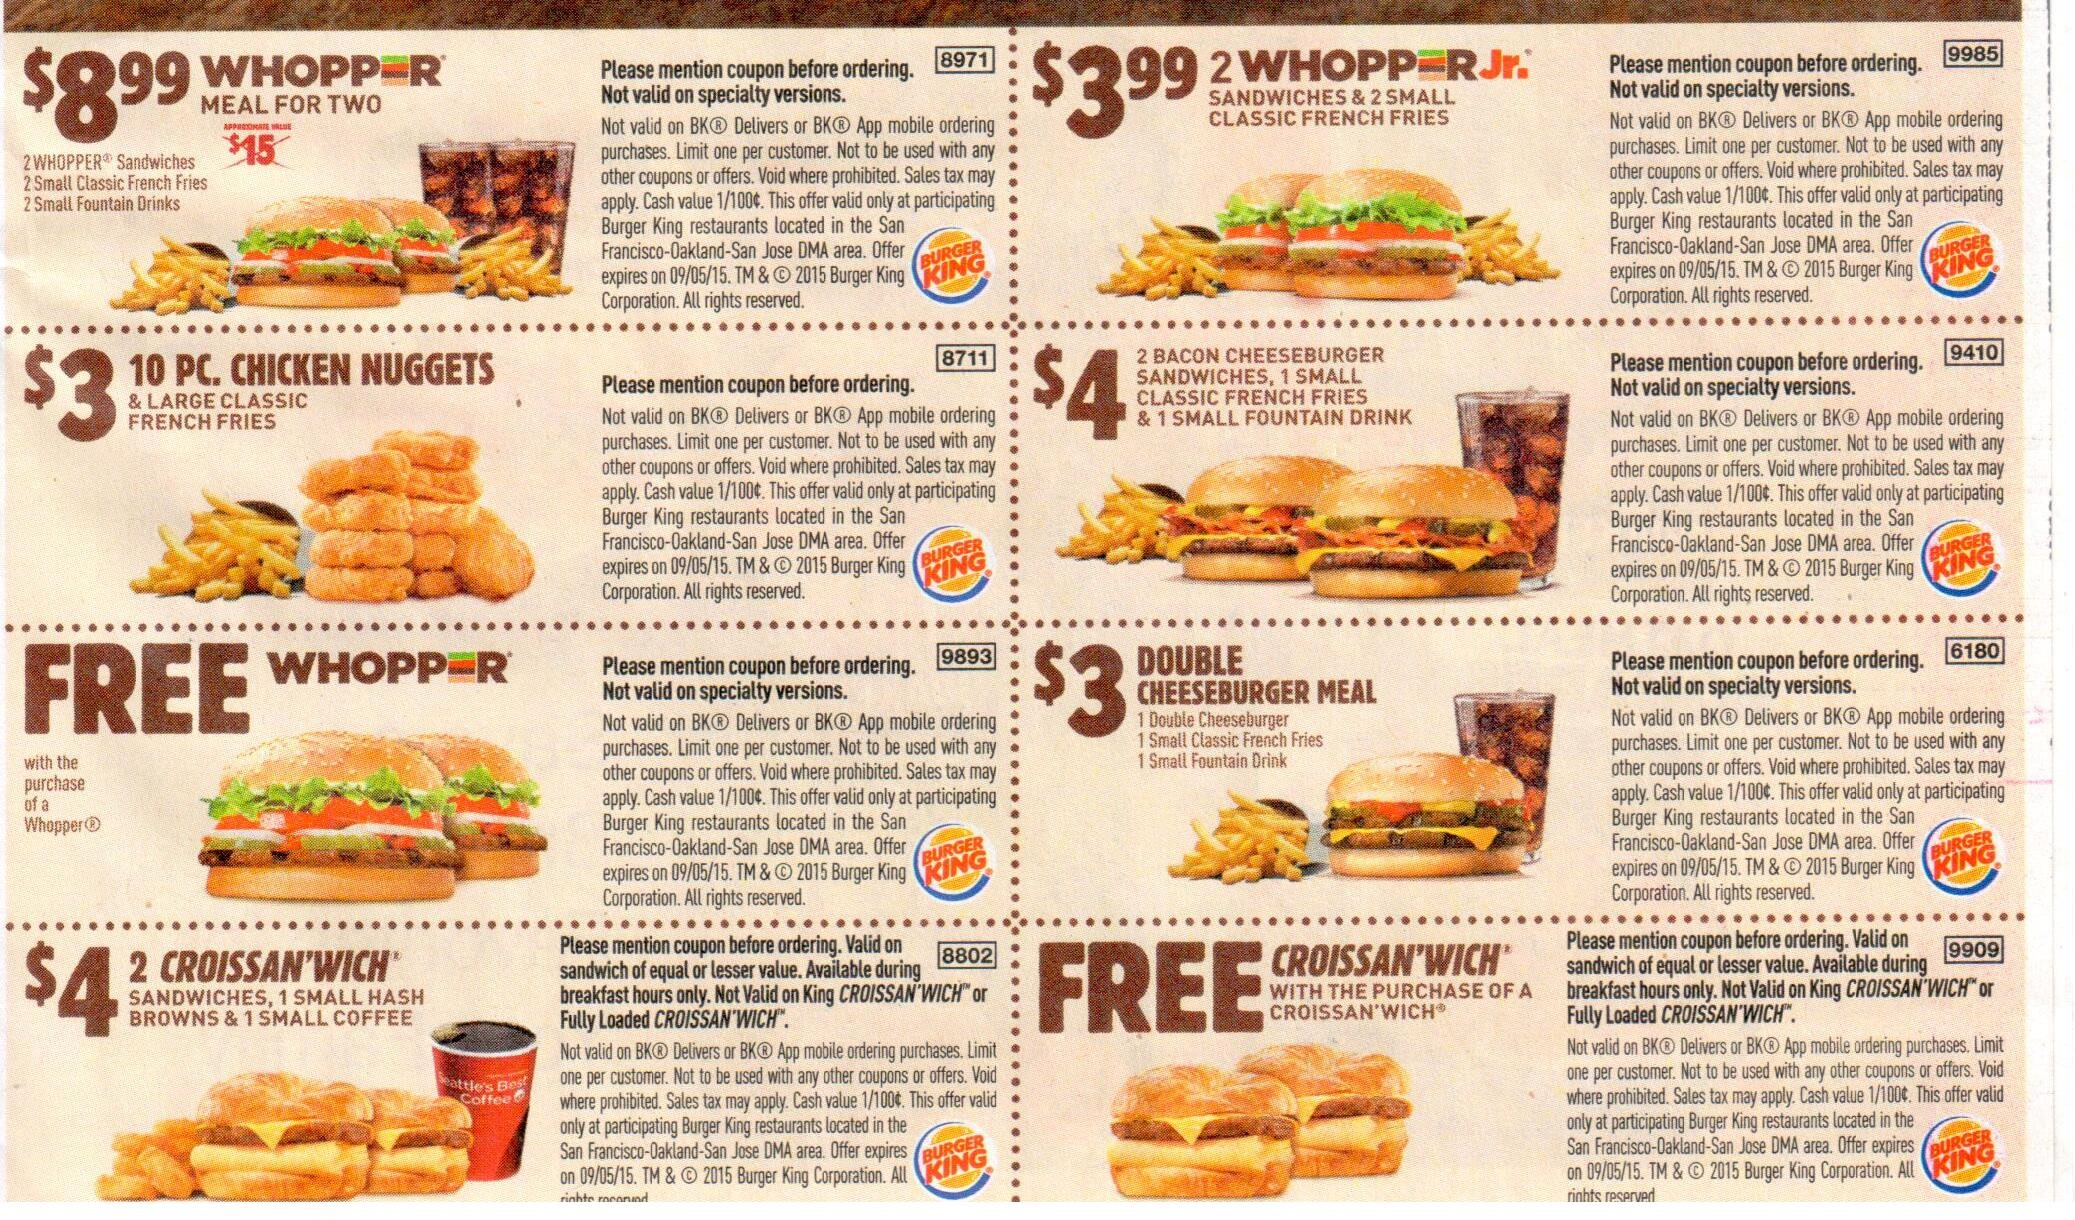 Download-Burger-King-Coupons-2018-Burgers - Burger King Free Coupons Printable